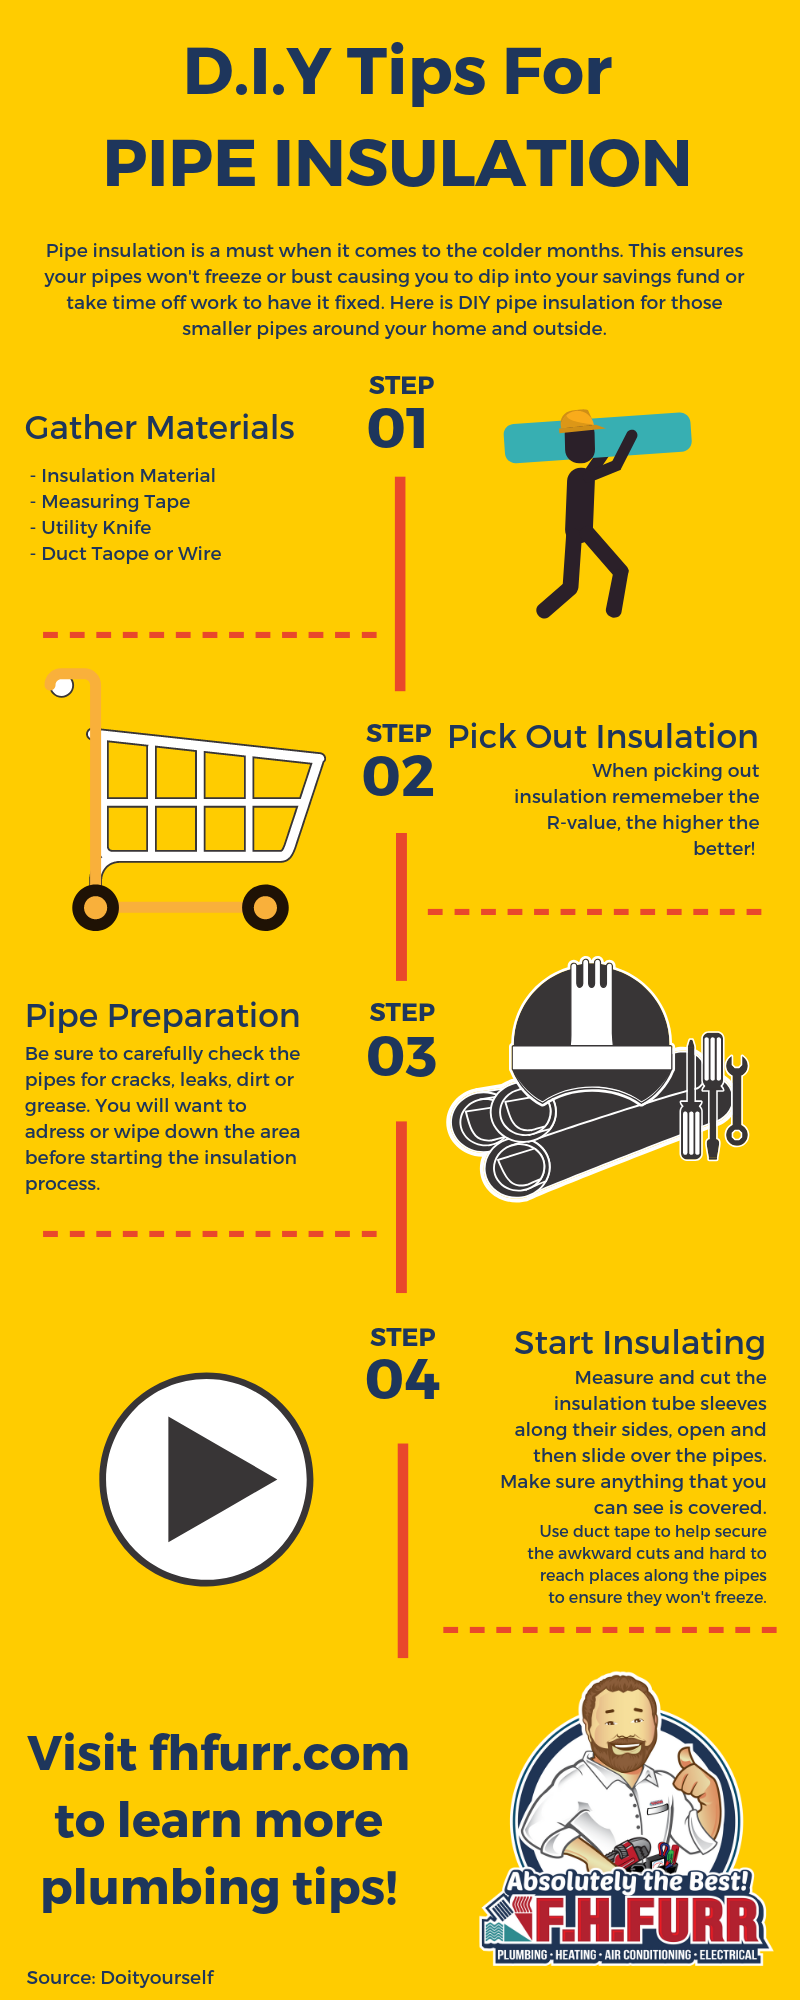 D I Y PIPE INSULATION